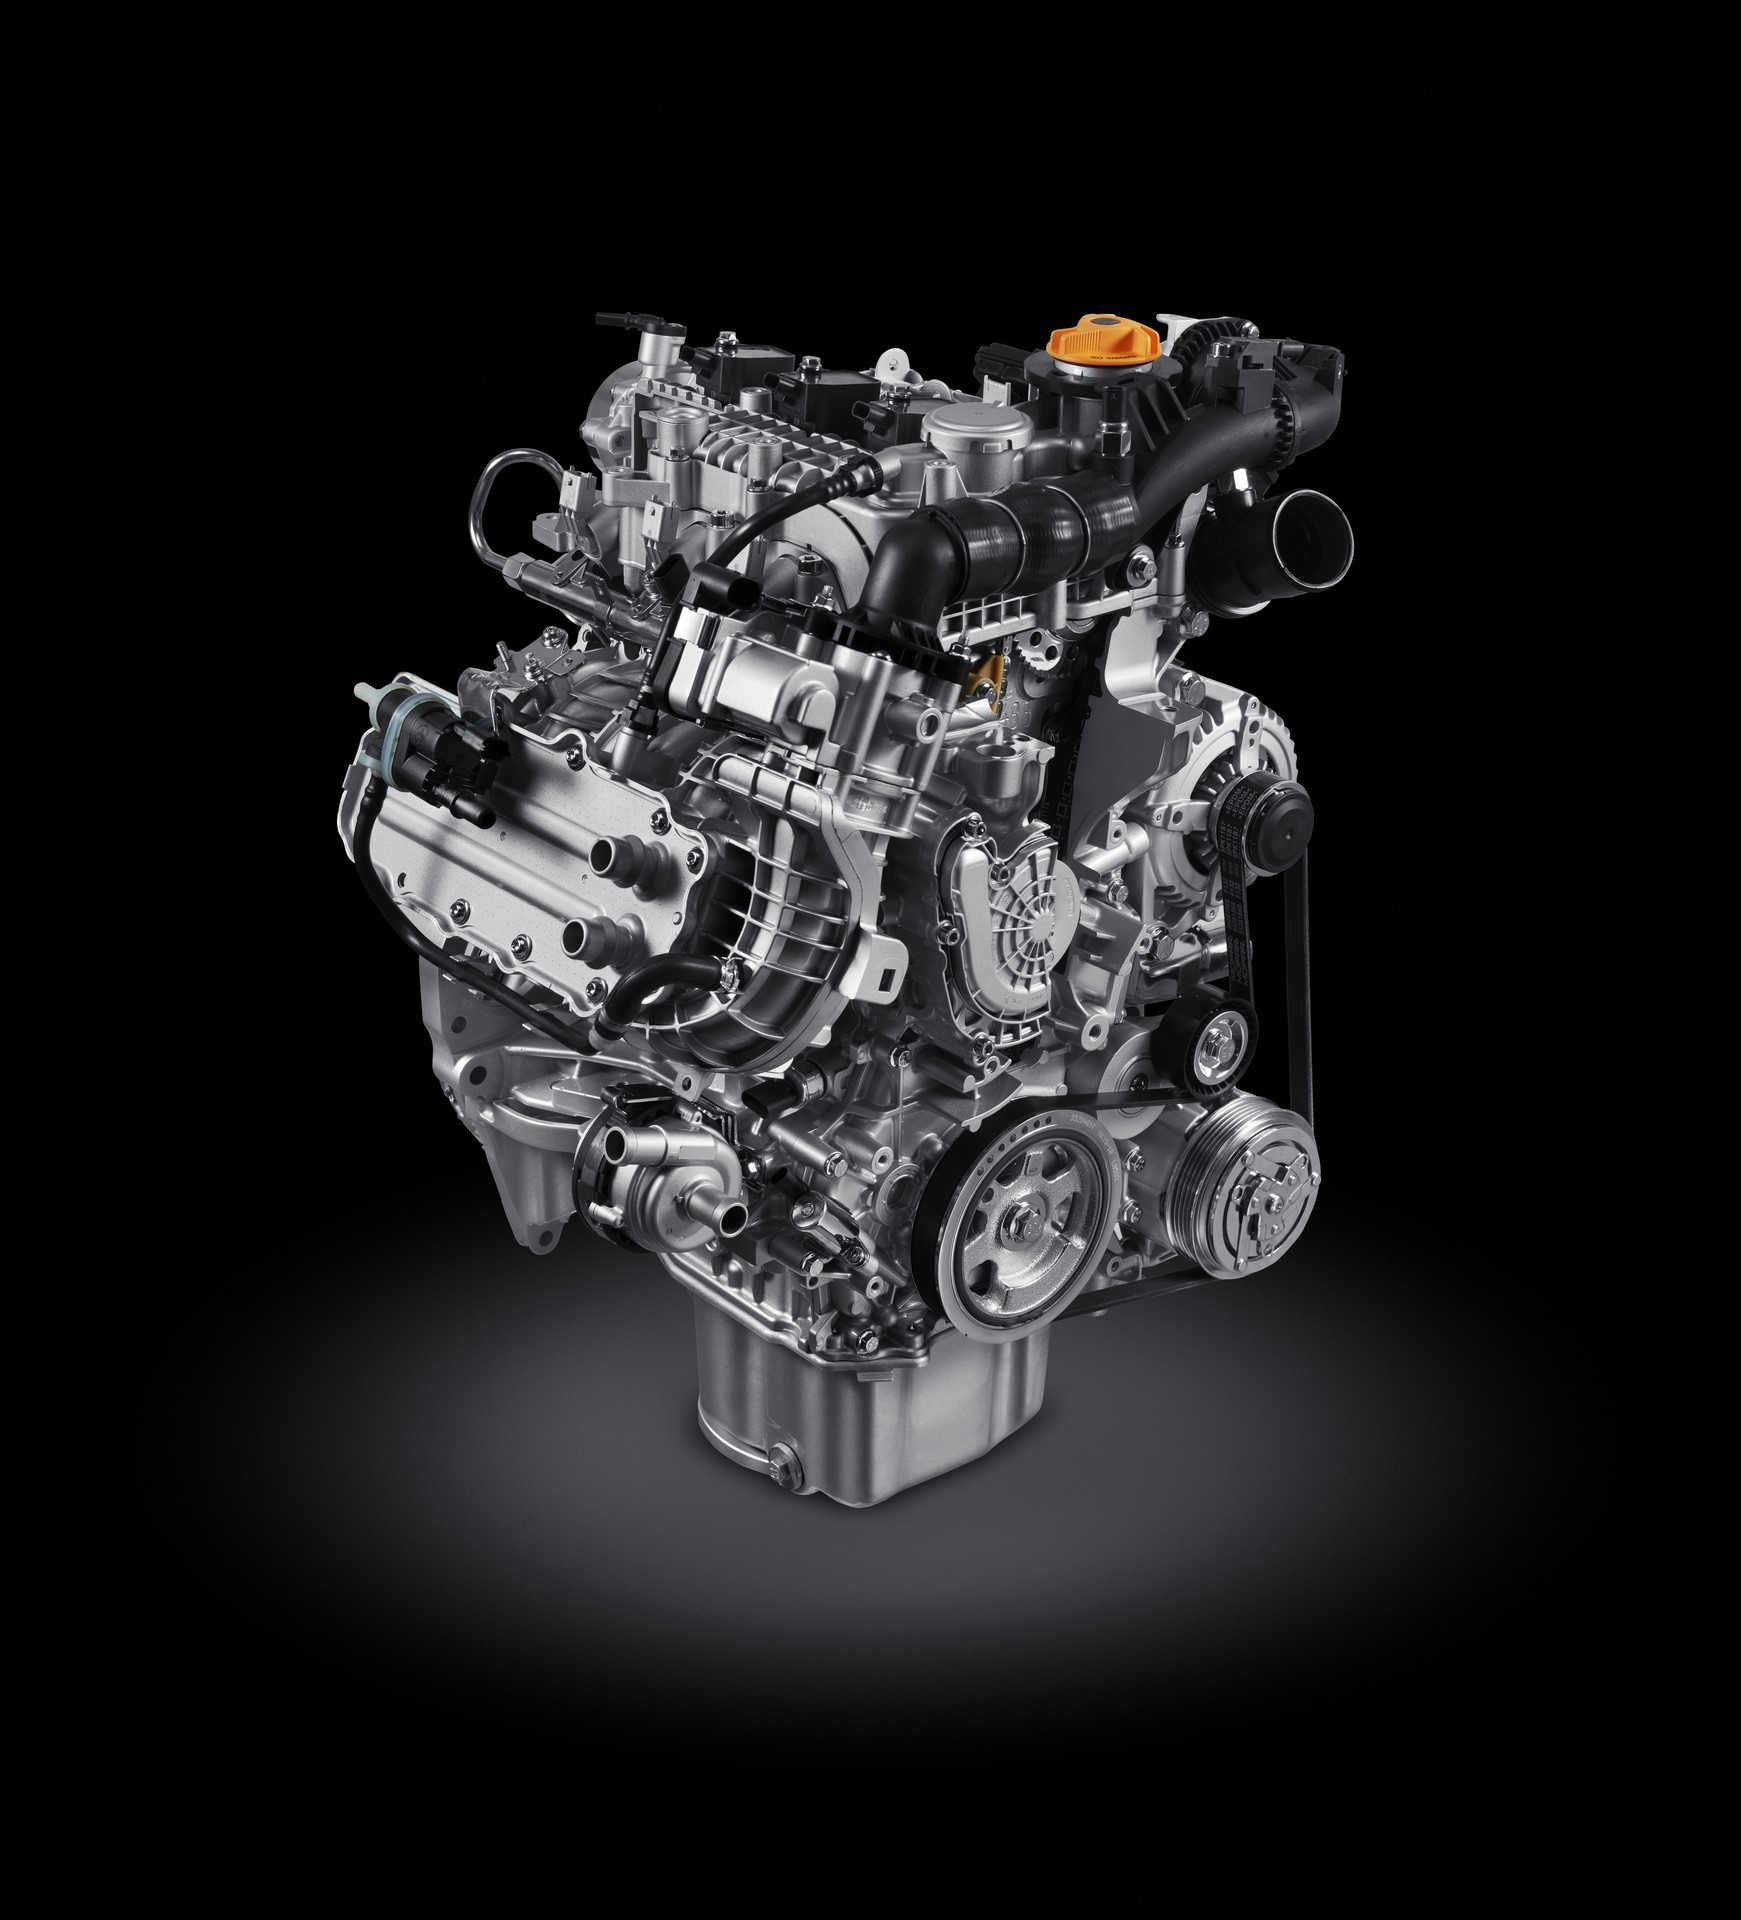 180828_Fiat_New-10L-Turbo-3-cylinder-120HP_10